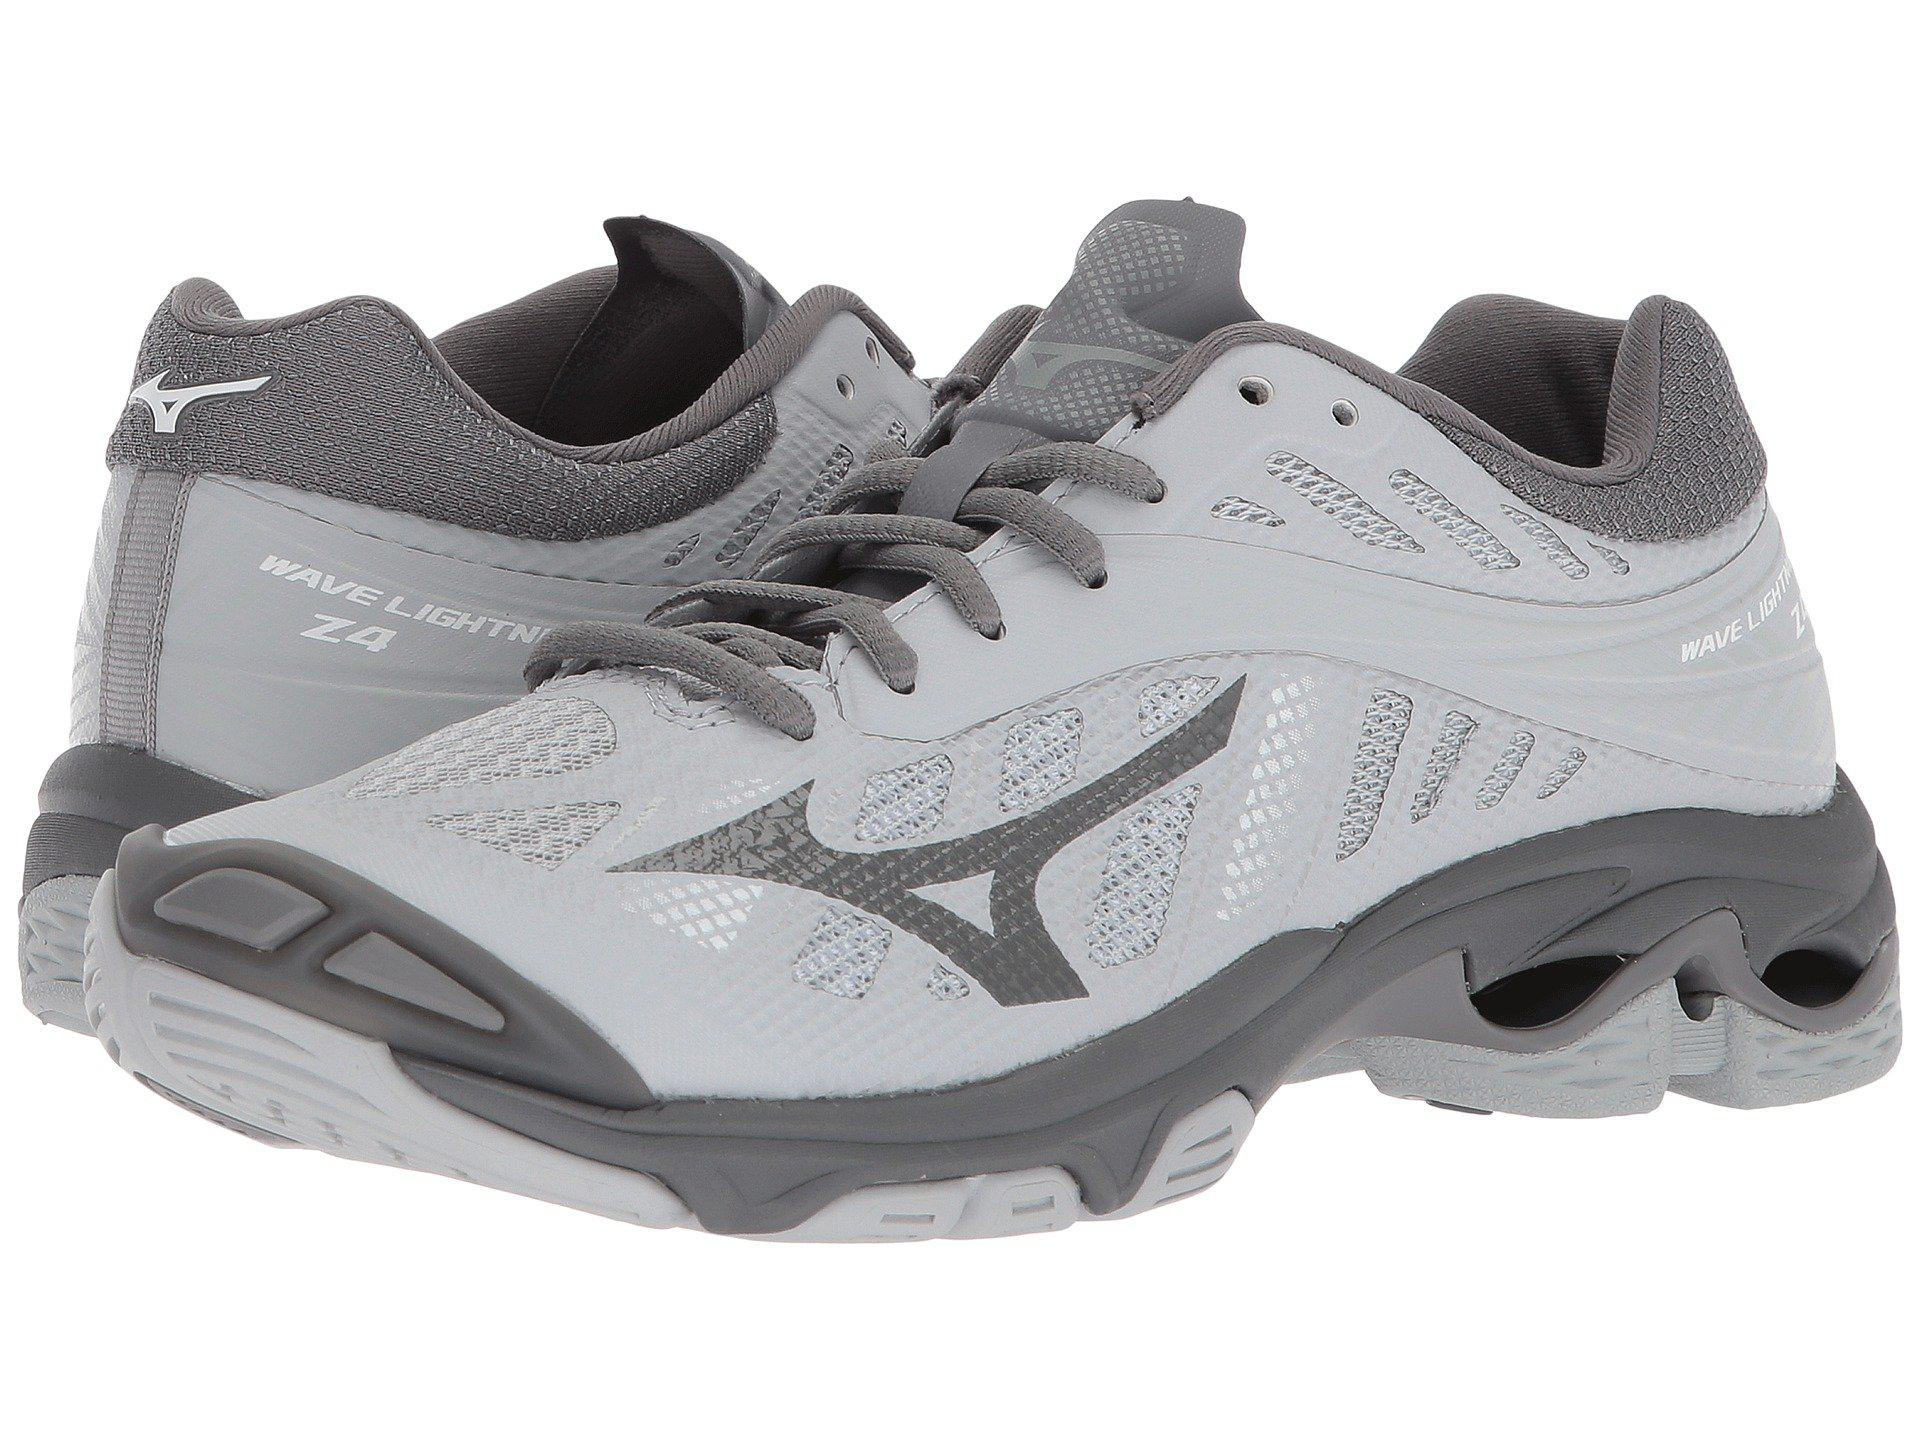 75c5ab4bf02 Mizuno Wave Lightning Z4 (stars stripes) Women s Volleyball Shoes in ...